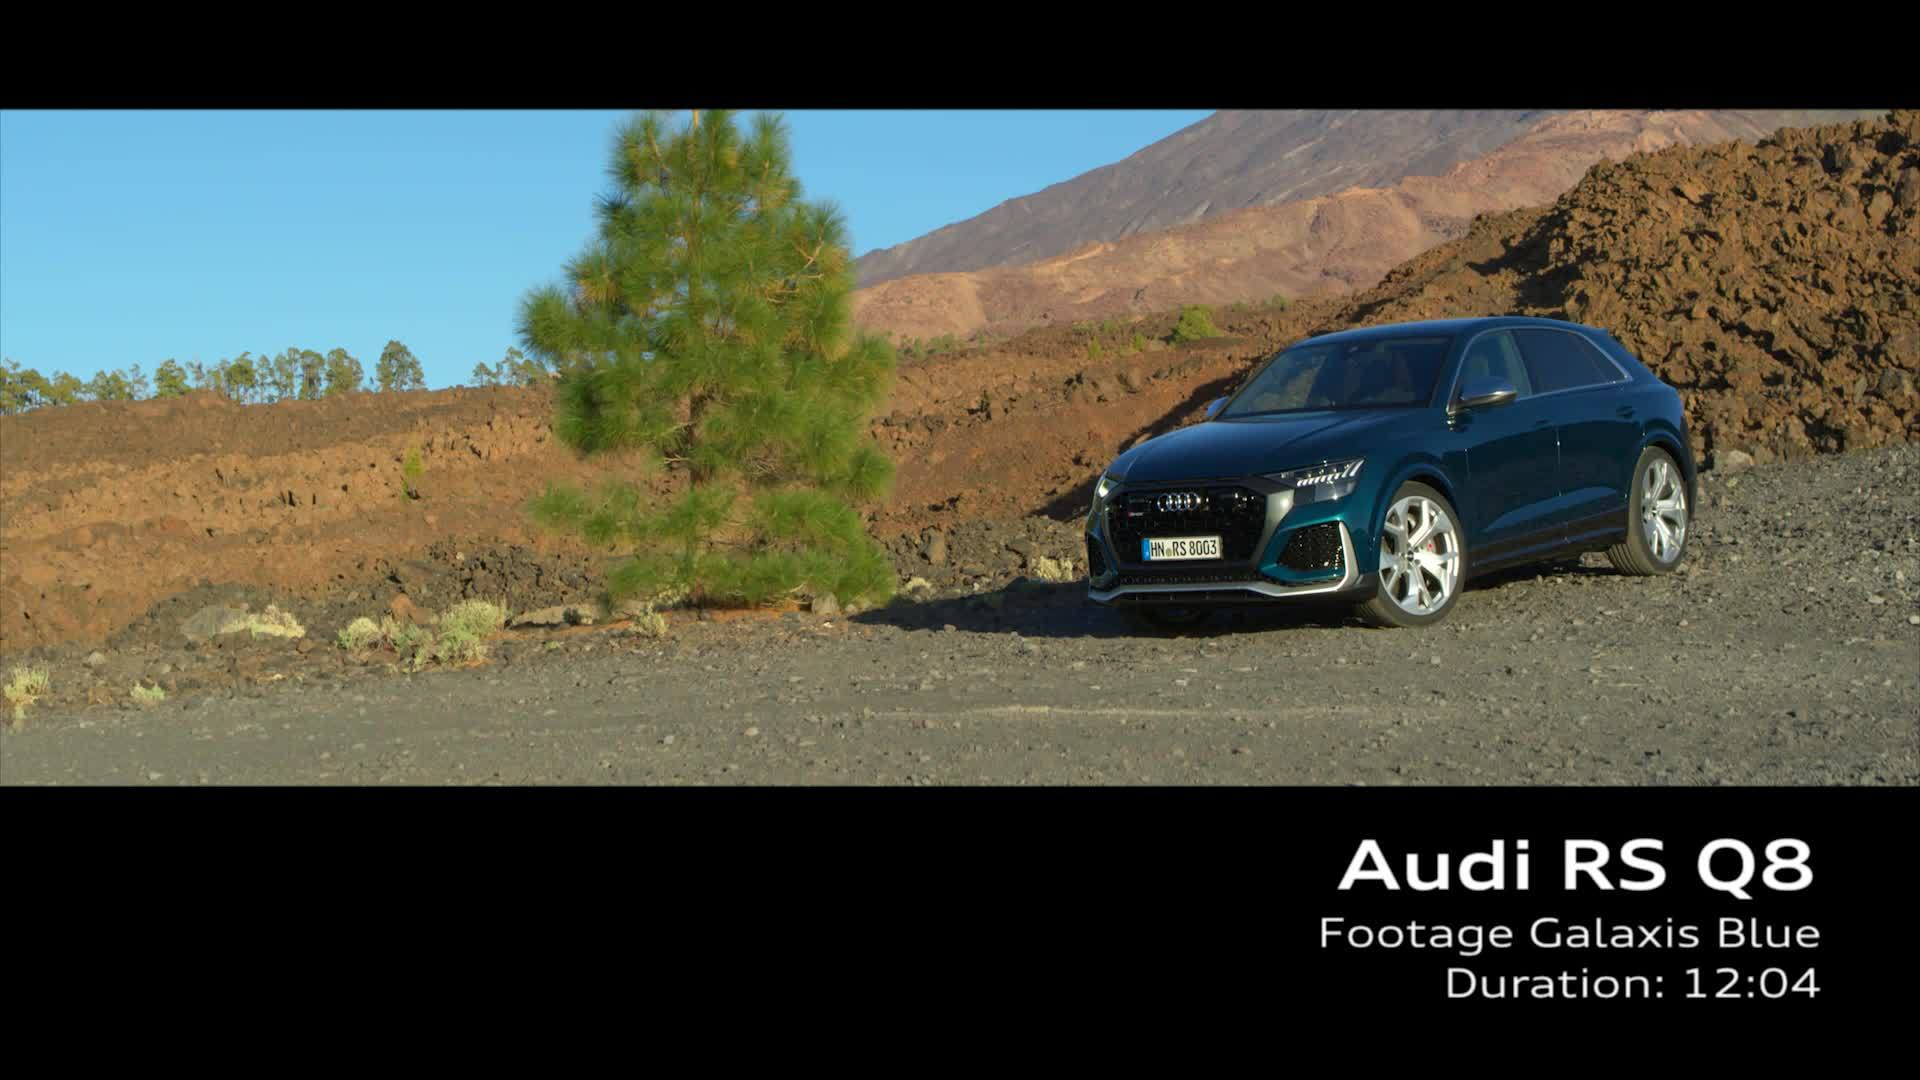 Audi RS Q8 on Location Galaxis Blue (Footage)